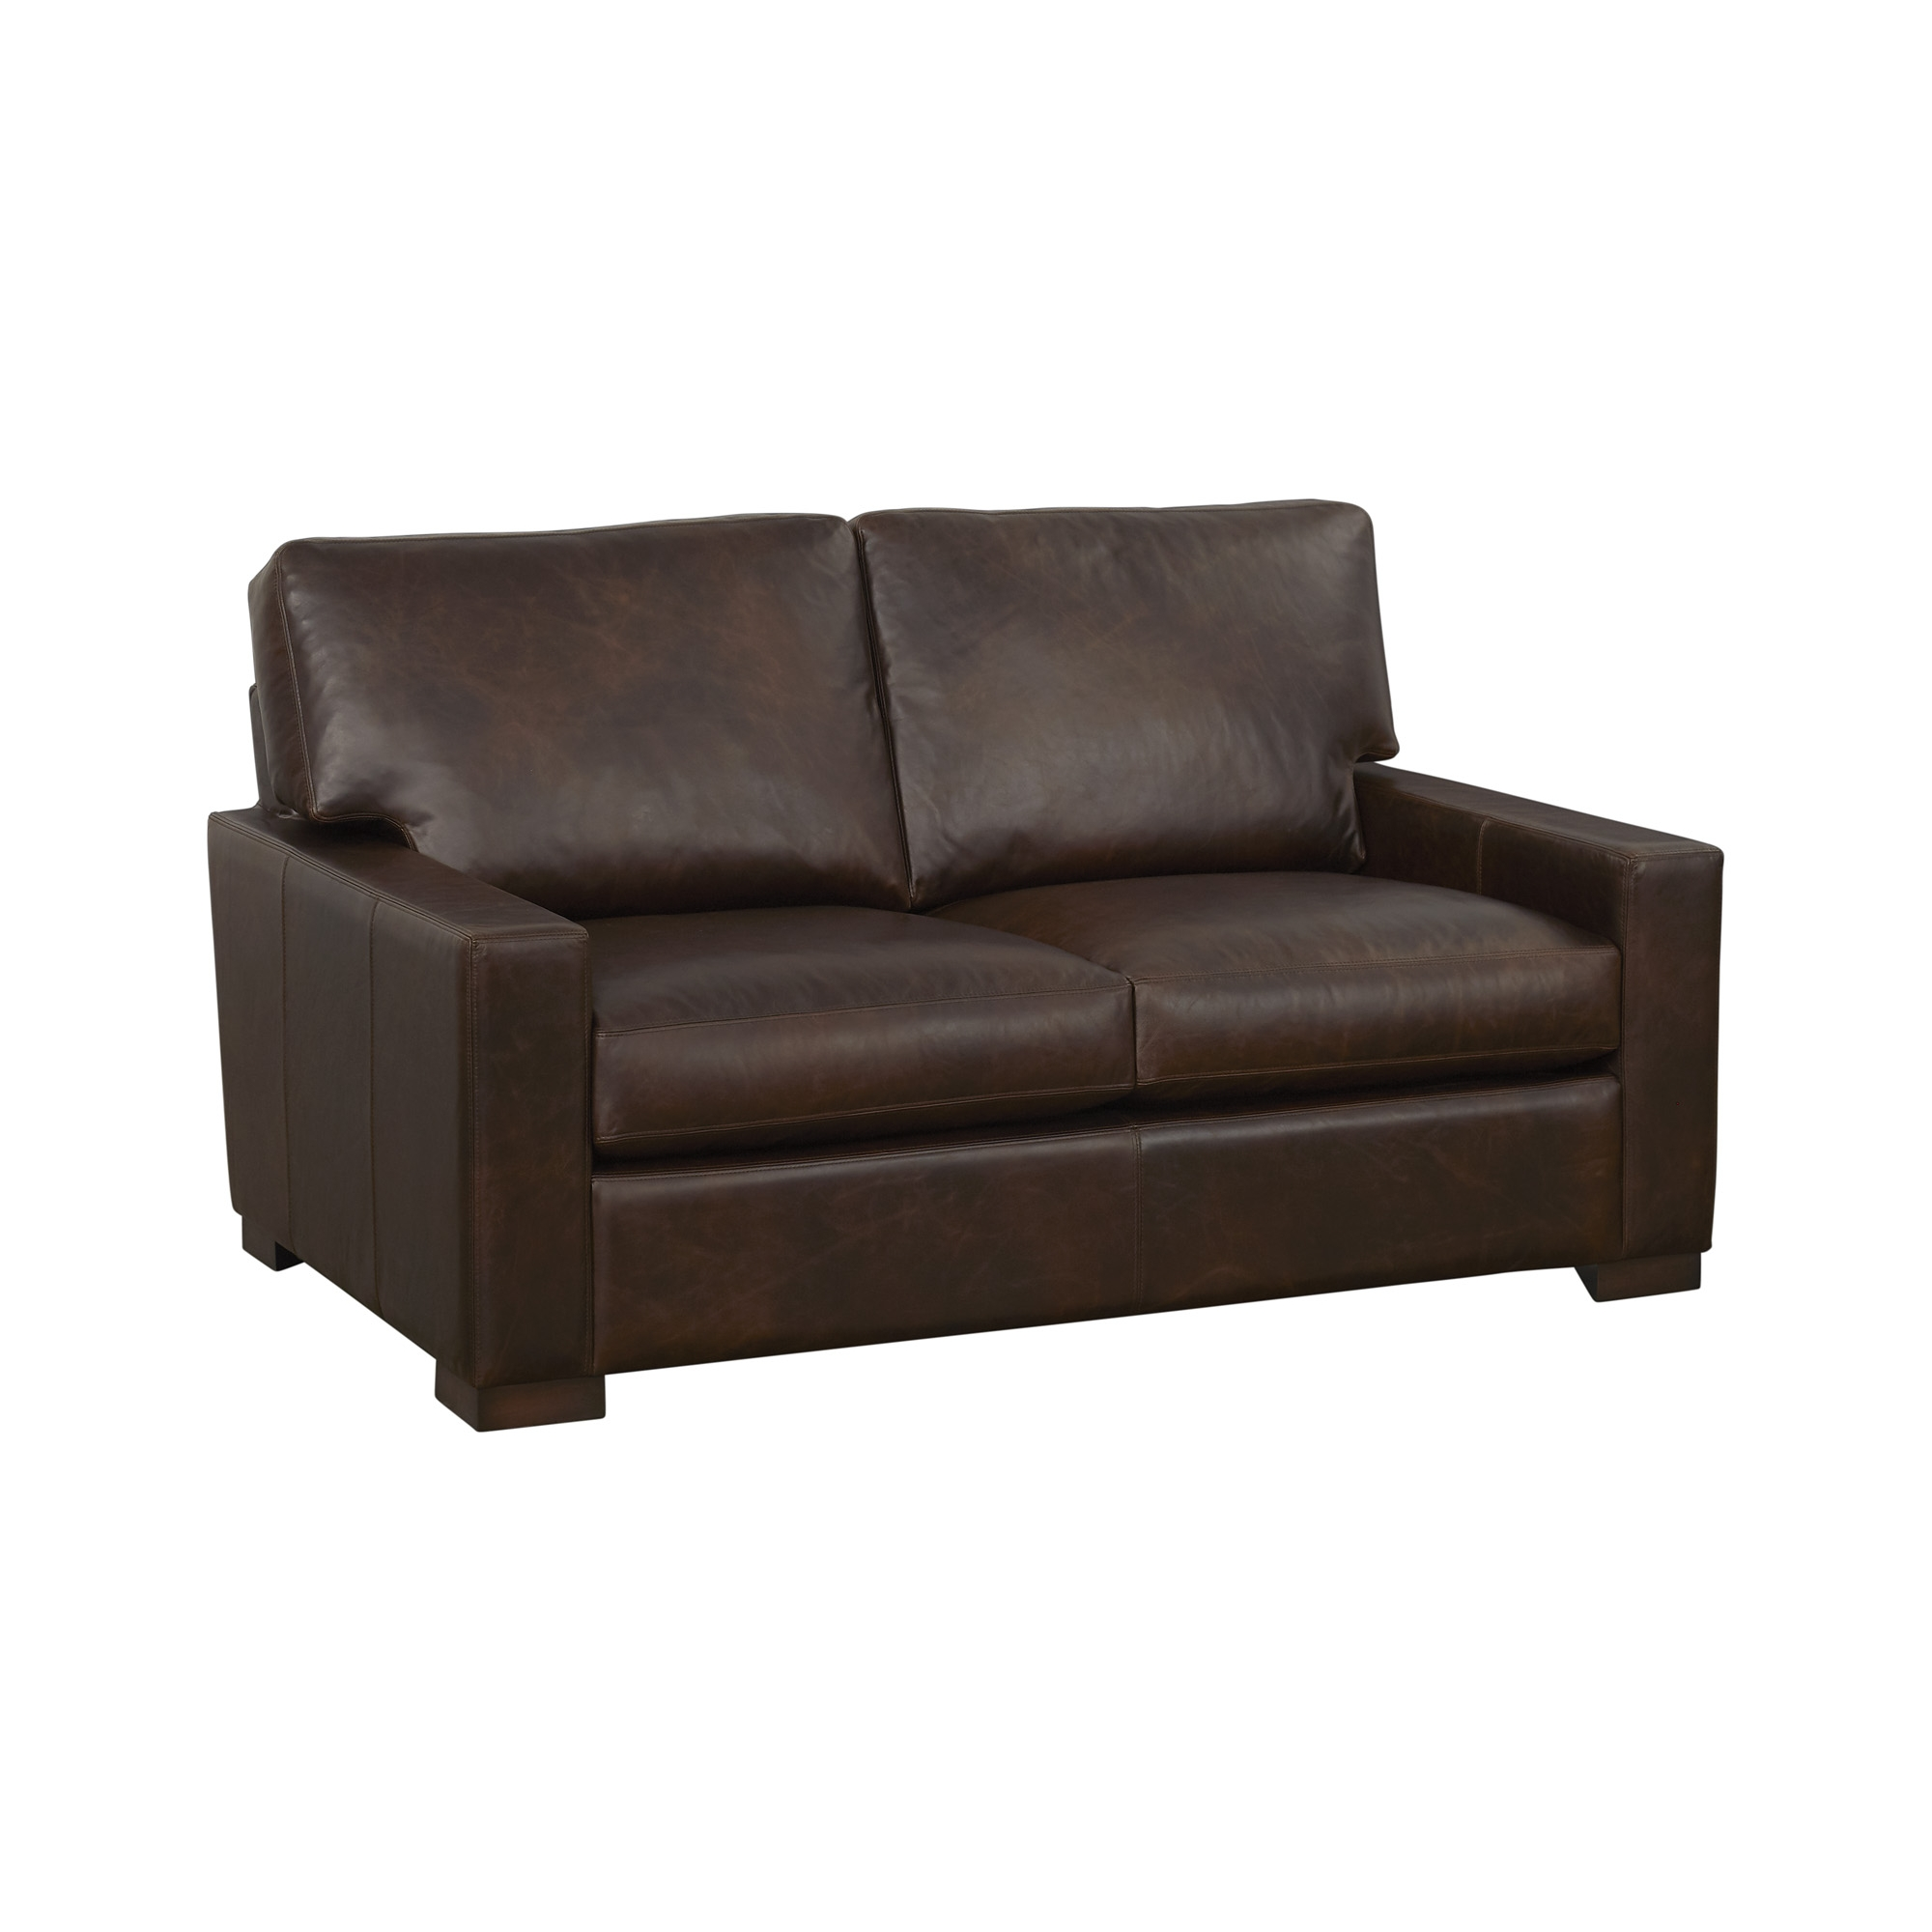 Mason Loveseat Find The Perfect Style